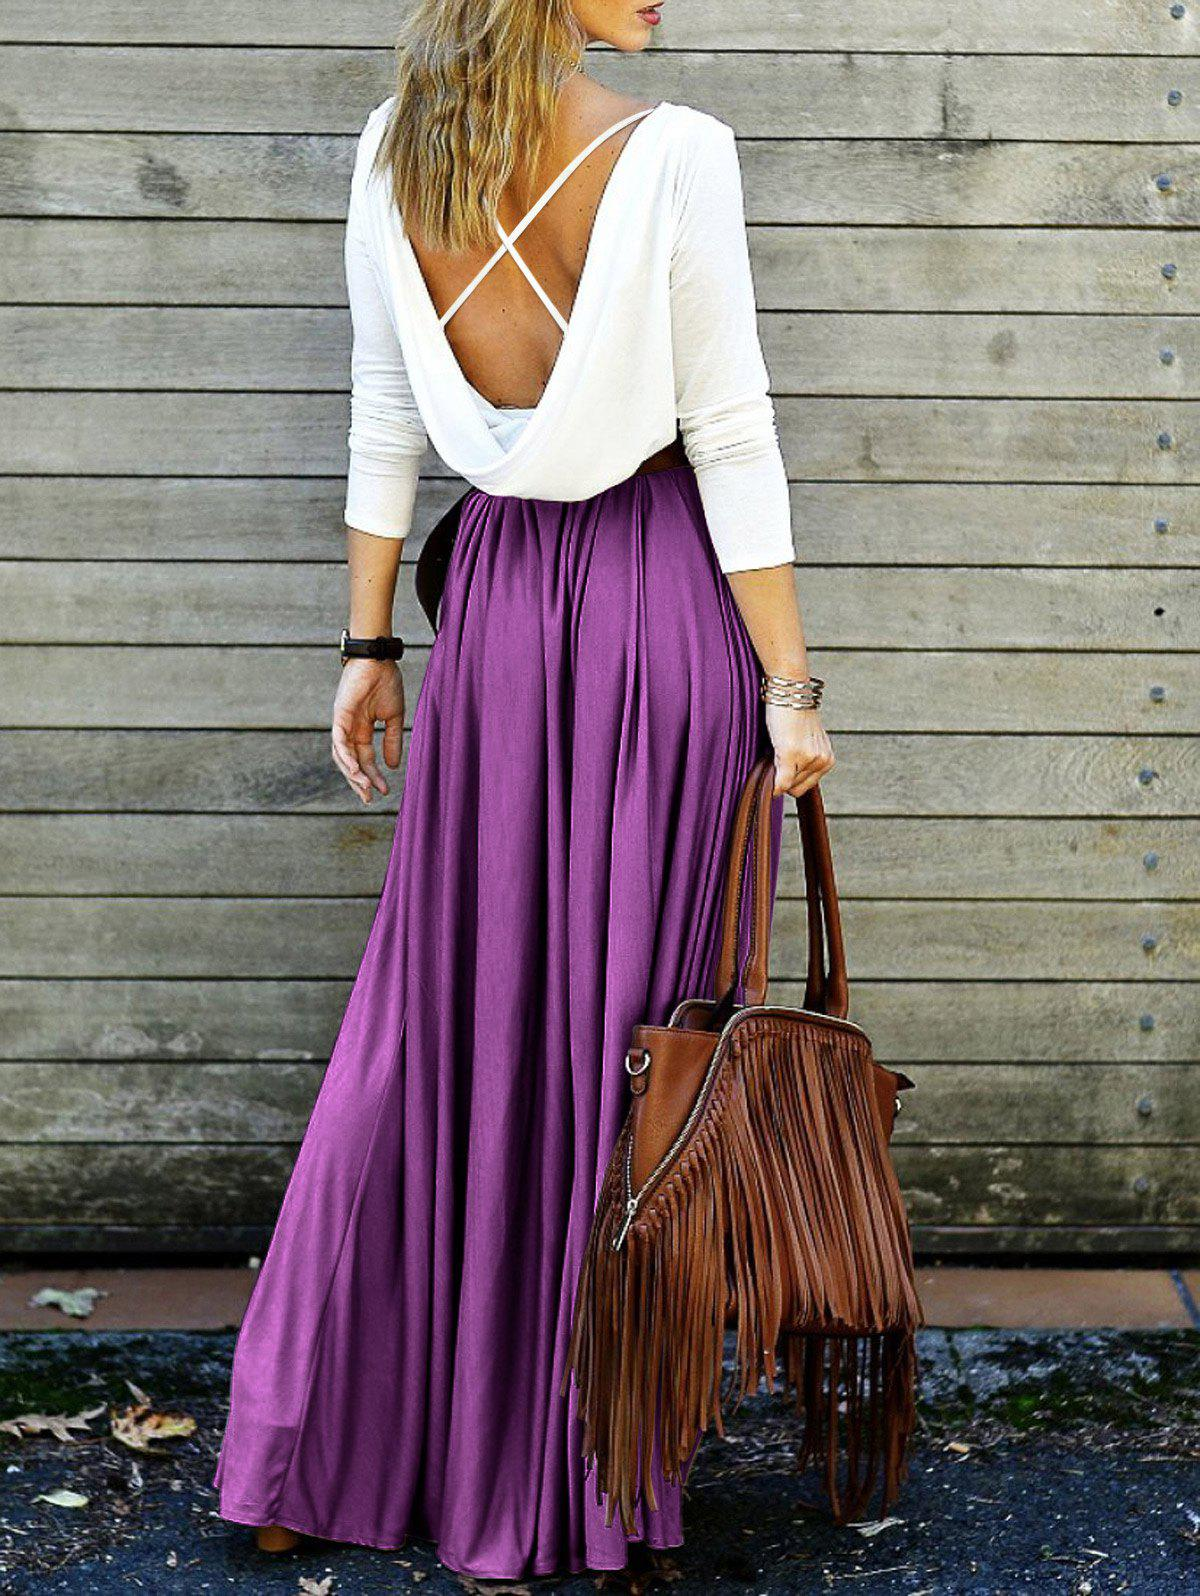 Back Plunging V Criss-Cross Spliced Maxi Dress - PURPLE XL